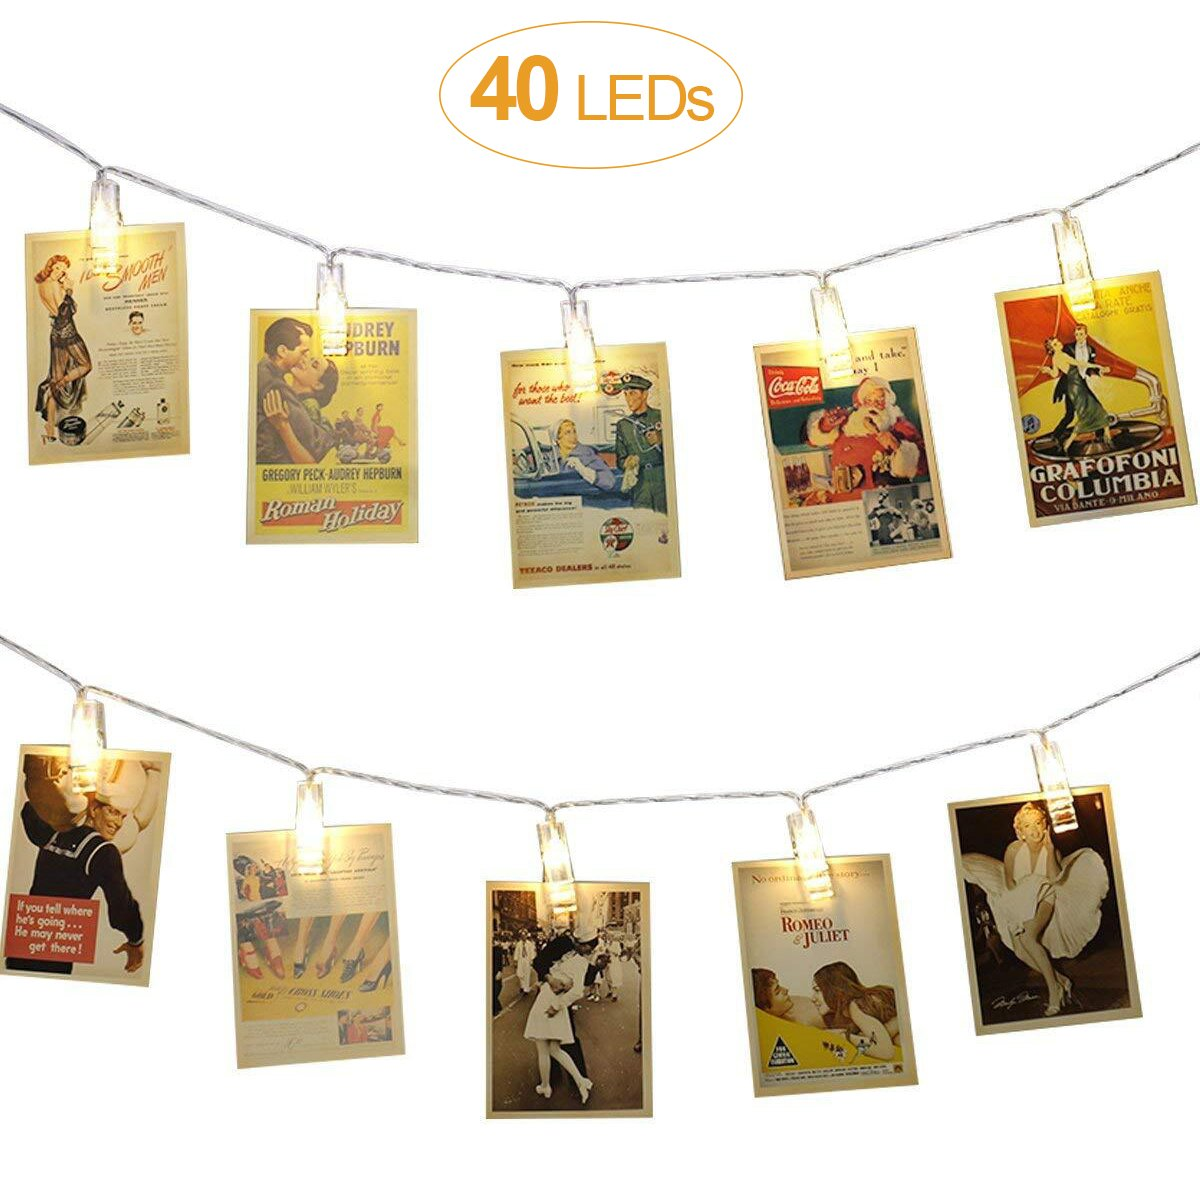 AOSTAR 40 LEDs Photo Clips String Lights (16.4ft, Warm White) Remote Control Fairy String Lights for Bedroom Hanging Photos, Cards and Artworks  by AOSTAR